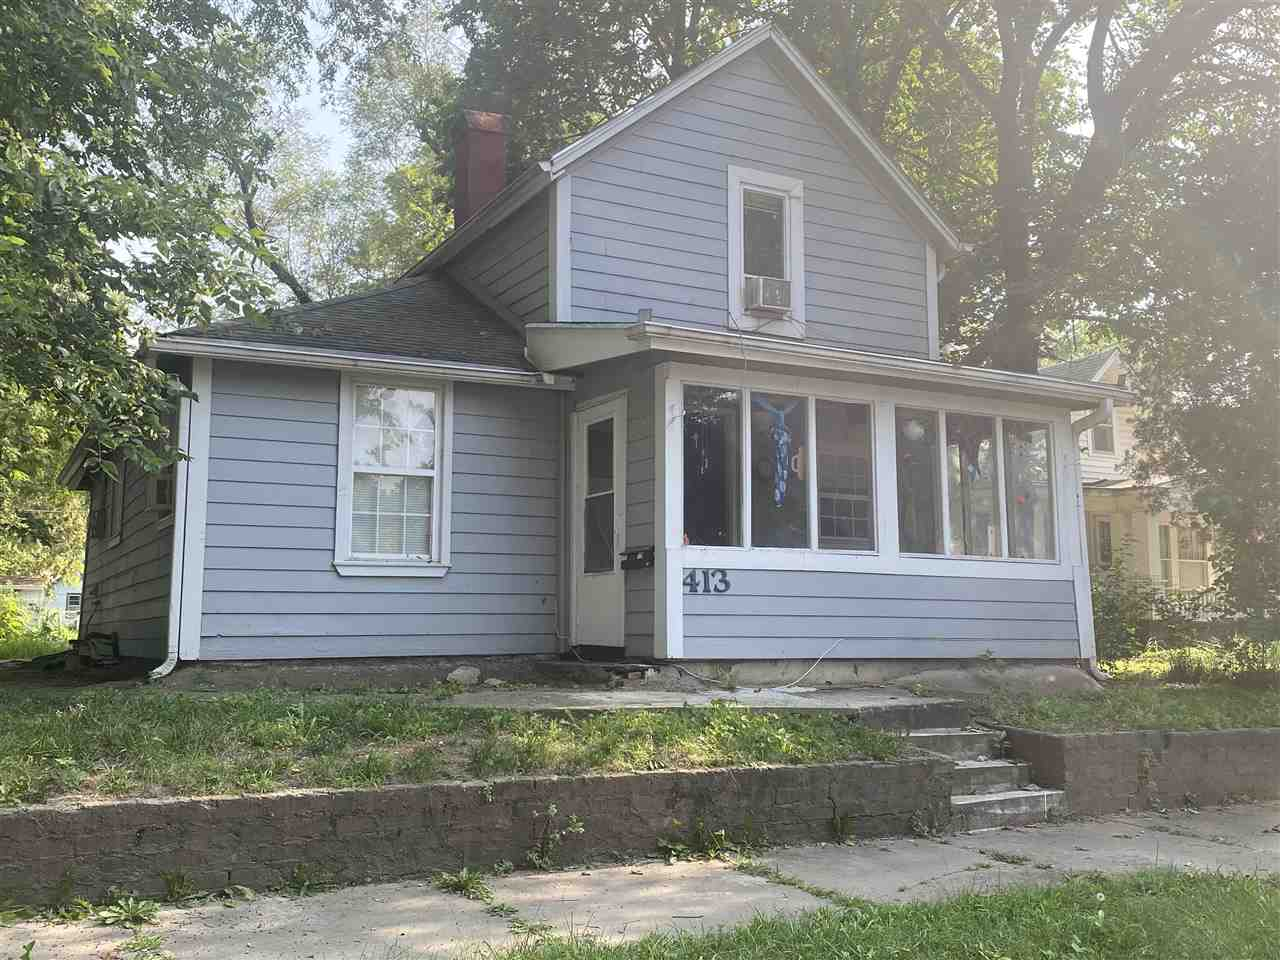 Centrally located affordable home on a full lot with fenced yard.  walk to elementary school and play grounds nearby and shopping at Hy-Vee as well as downtown.  This house priced to sell,  needs  fome tlc but could make a nice entry level home or investment.  24 hr notice required, tenant is moving soon.